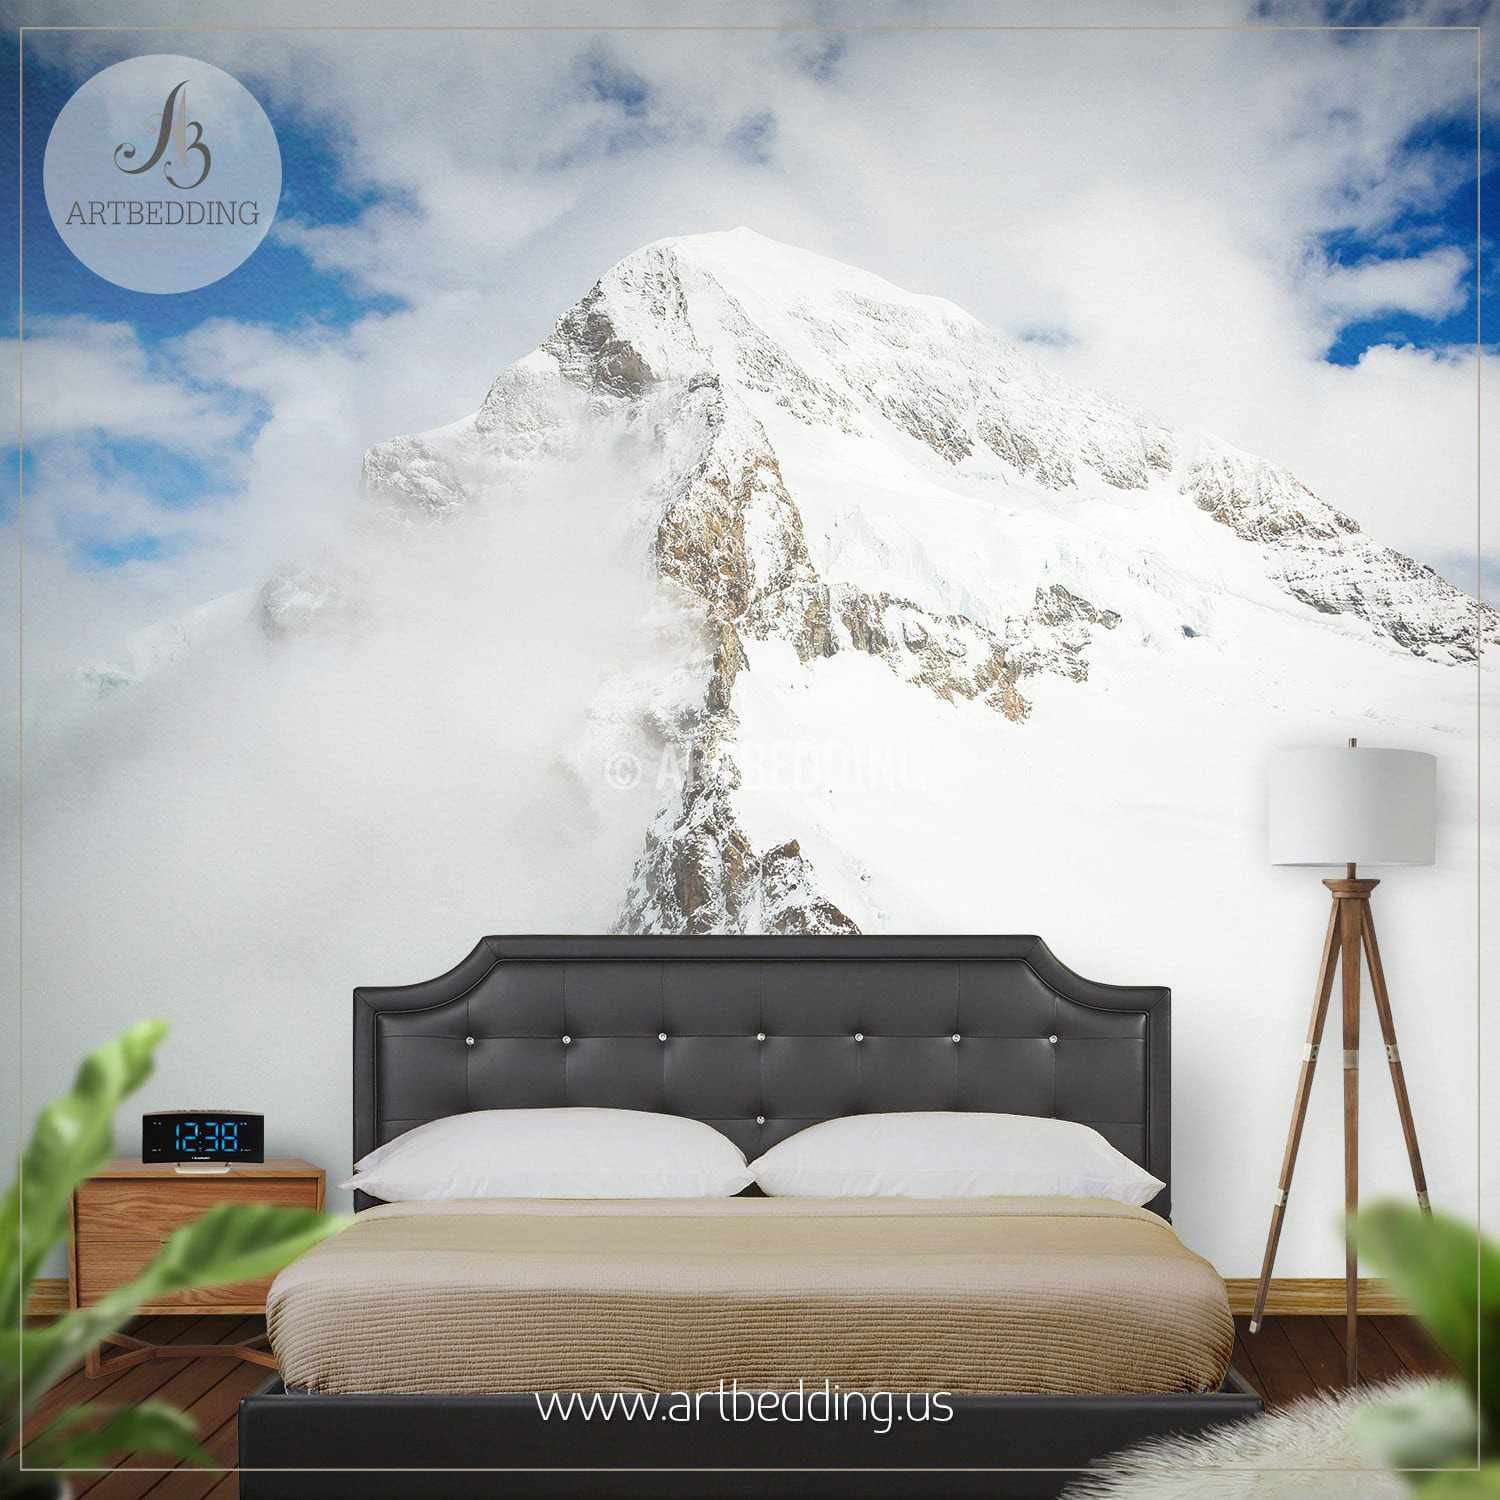 Most Inspiring Wallpaper Mountain Bedroom - snow-mountain-wall-mural-self-adhesive-peel-stick-photo-mural-forest-wall-mural-photo-mural-home-decor-28702553748  You Should Have_397777.jpg?v\u003d1498135769